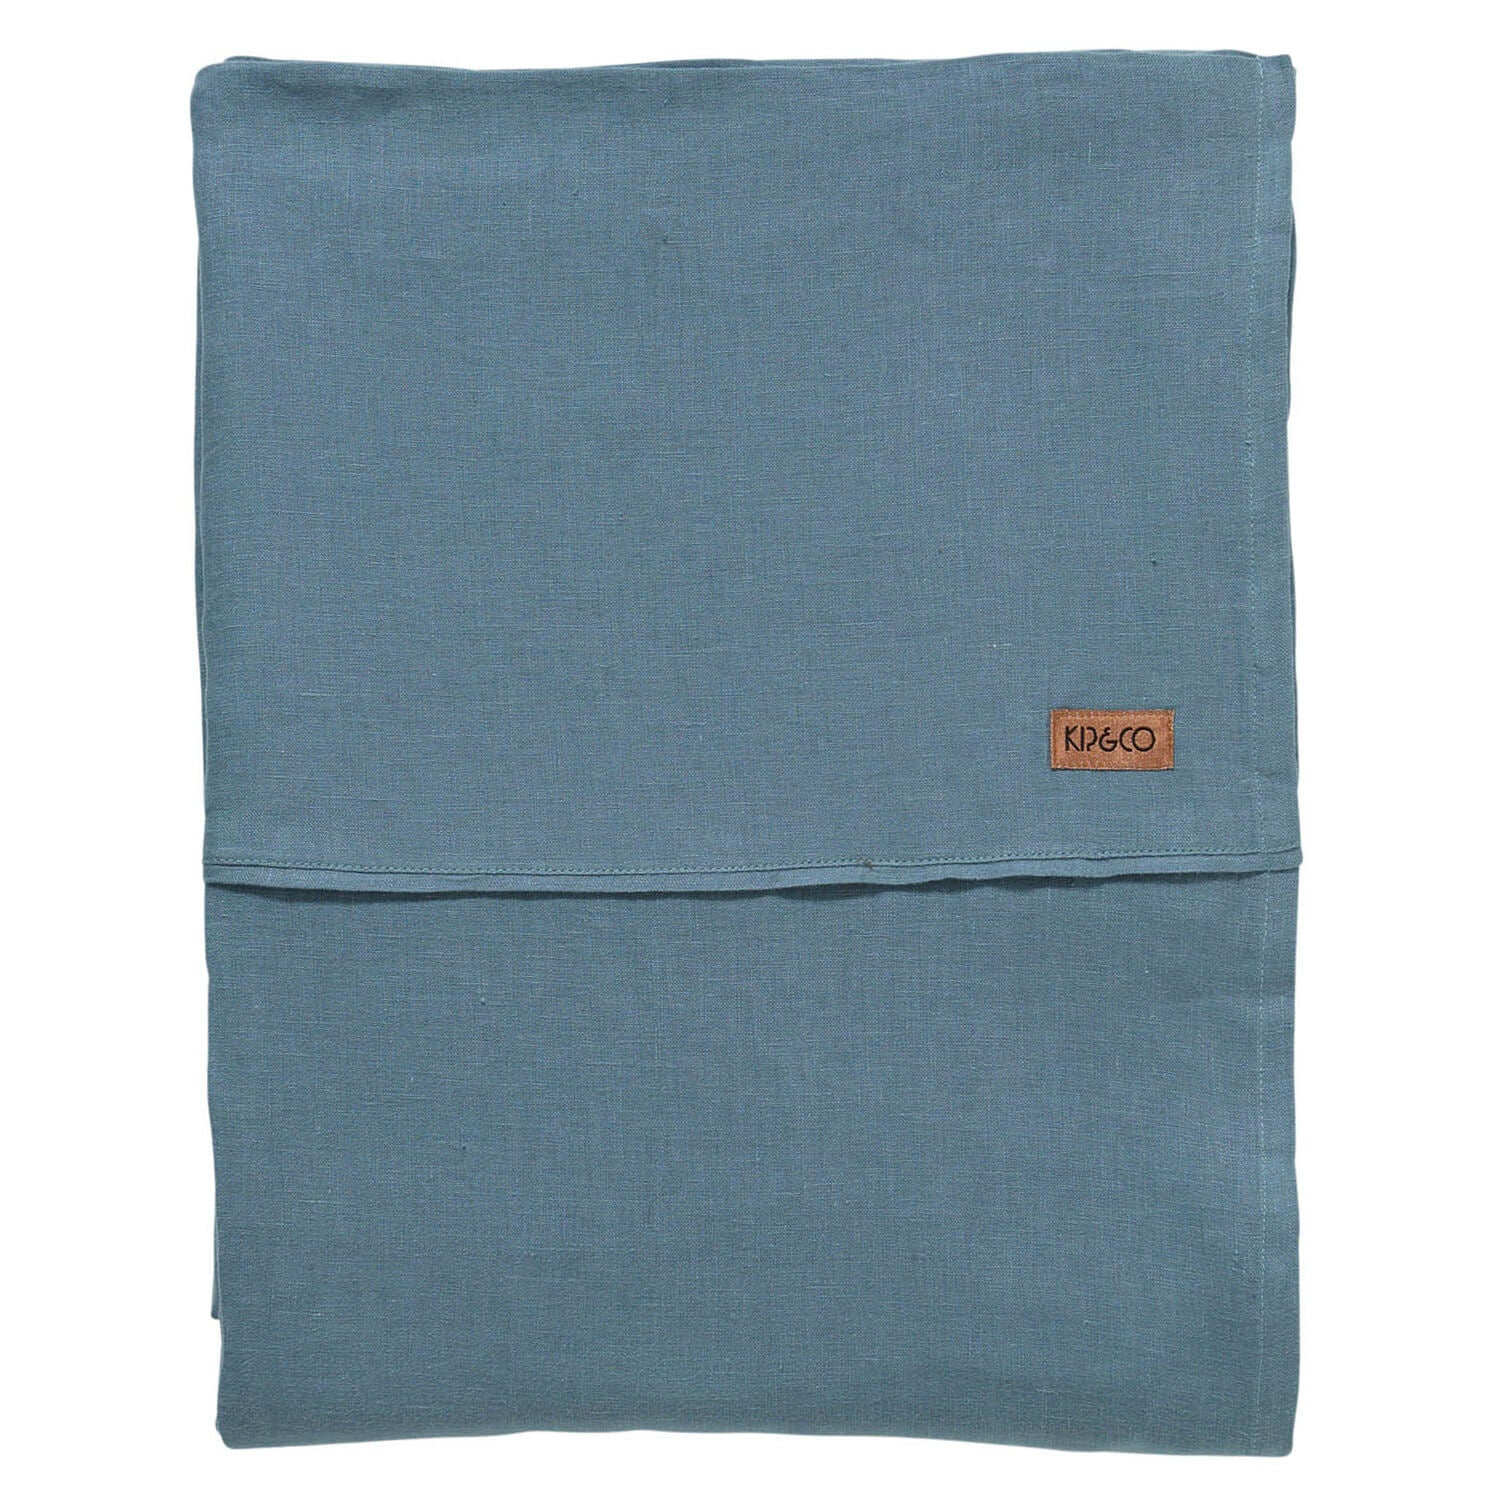 Kip and co Slate French linen fitted sheet | The Home Maven